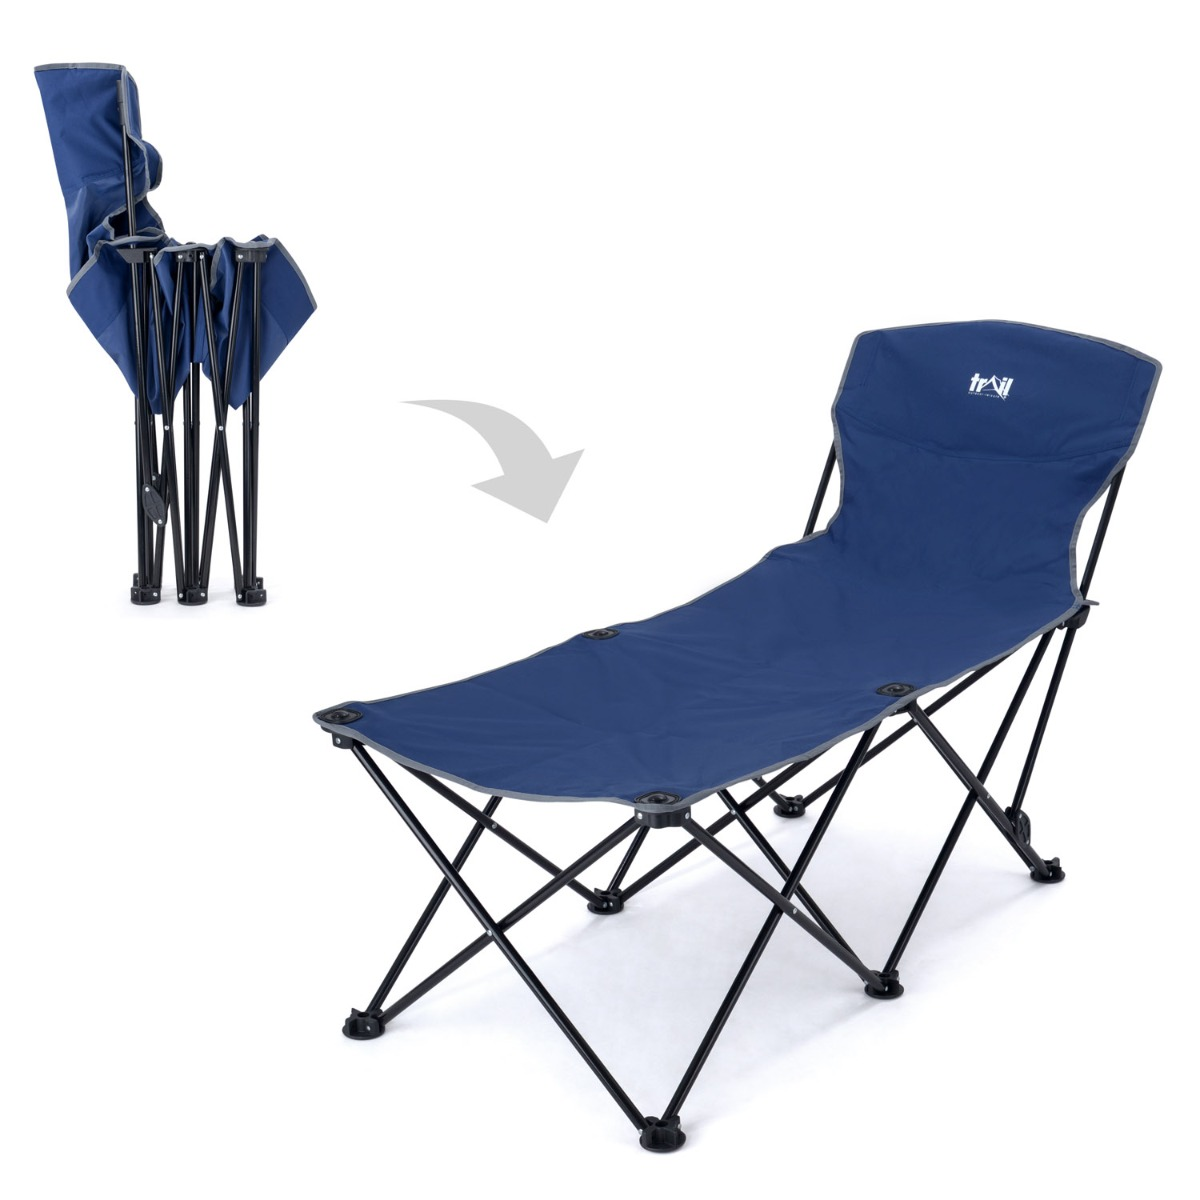 Super Bench Furniture Folding Sun Lounger Portable Recliner Beach Bralicious Painted Fabric Chair Ideas Braliciousco